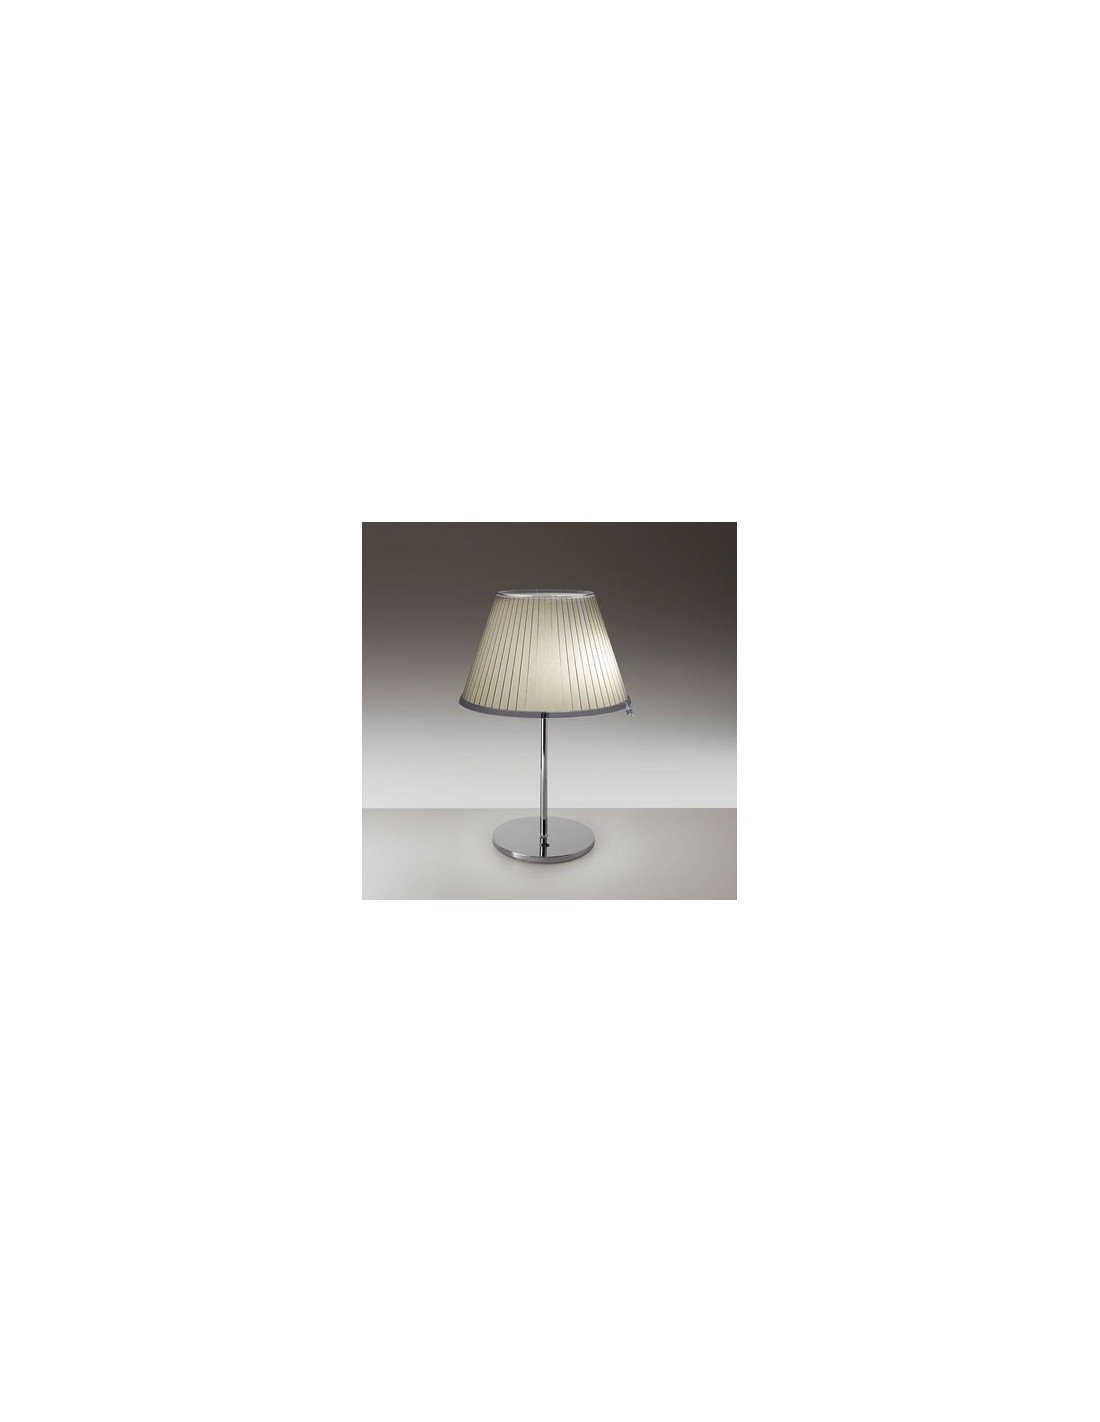 Lampe de table Choose Halogène chrome papier parchemin beige  vue d\'ensemble Artemide